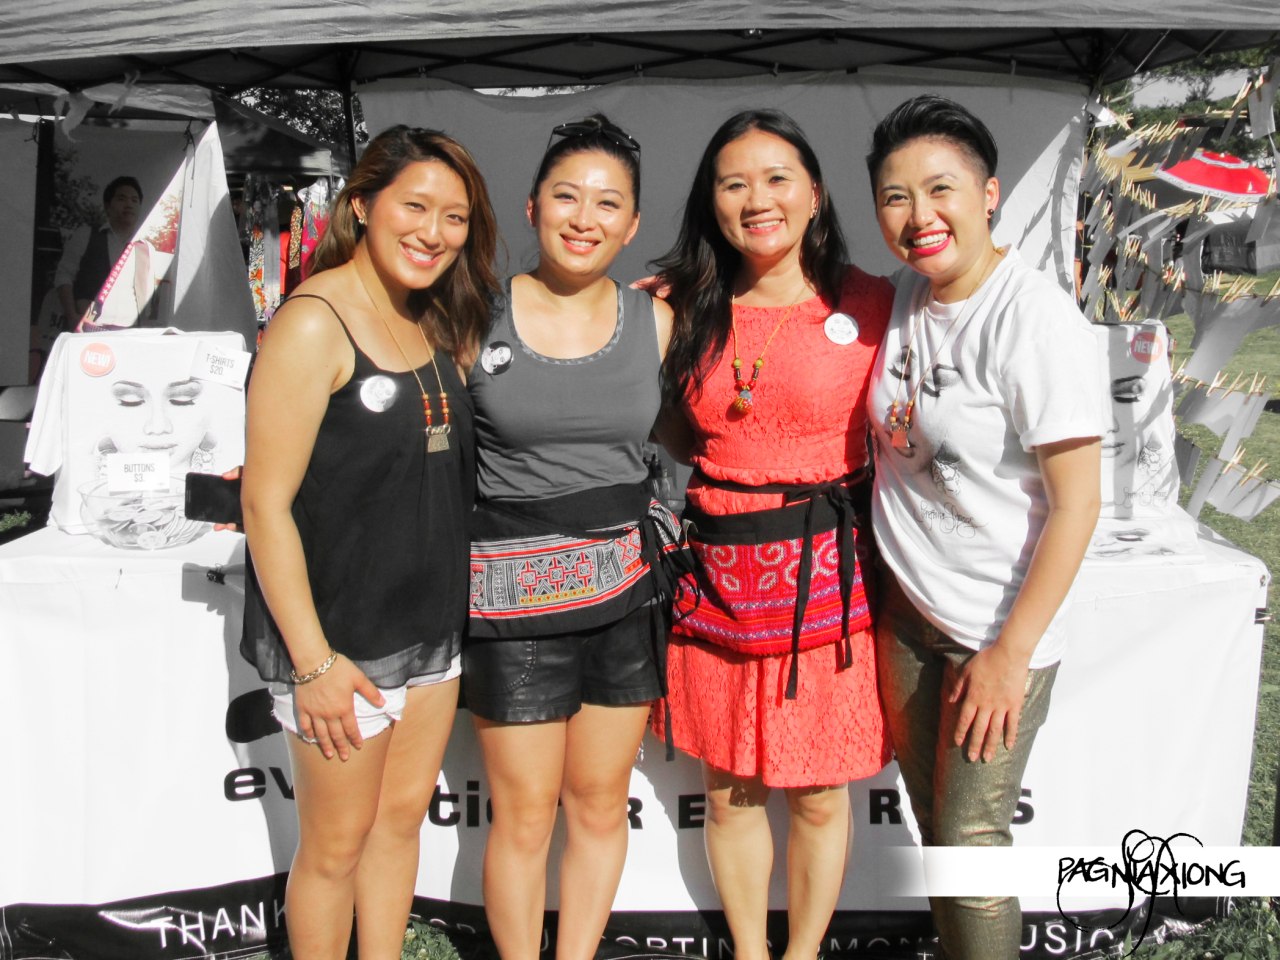 BTS: I am truly blessed with amazing sisters. Two flew in from each coast and one gave up her schedule to make sure you were all able to see me perform, grab a CD, get your t-shirt signed, + take a photo with me. Pader, Pa Kou, & Nancy helped make this past J4 an incredible success! THANK YOU to my biggest supporters: my beloved sisters! I LOVE YOU ALL!